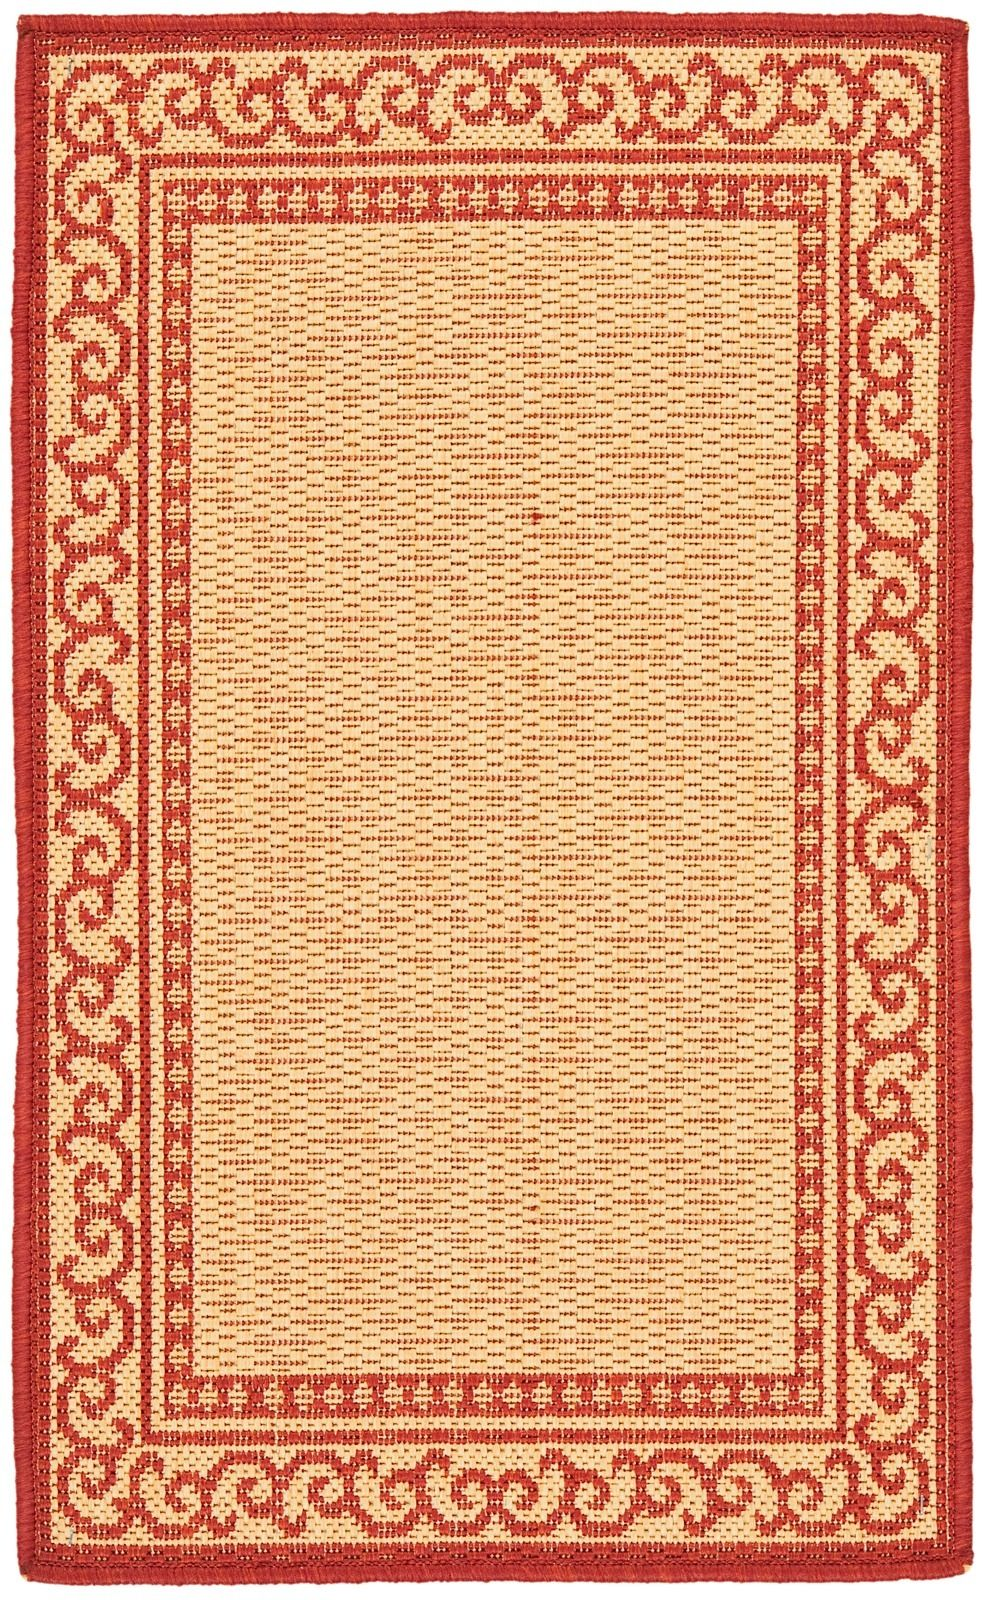 safavieh courtyard - set of 2 (6.6x9.6) & (1.8x2.8) contemporary area rug collection